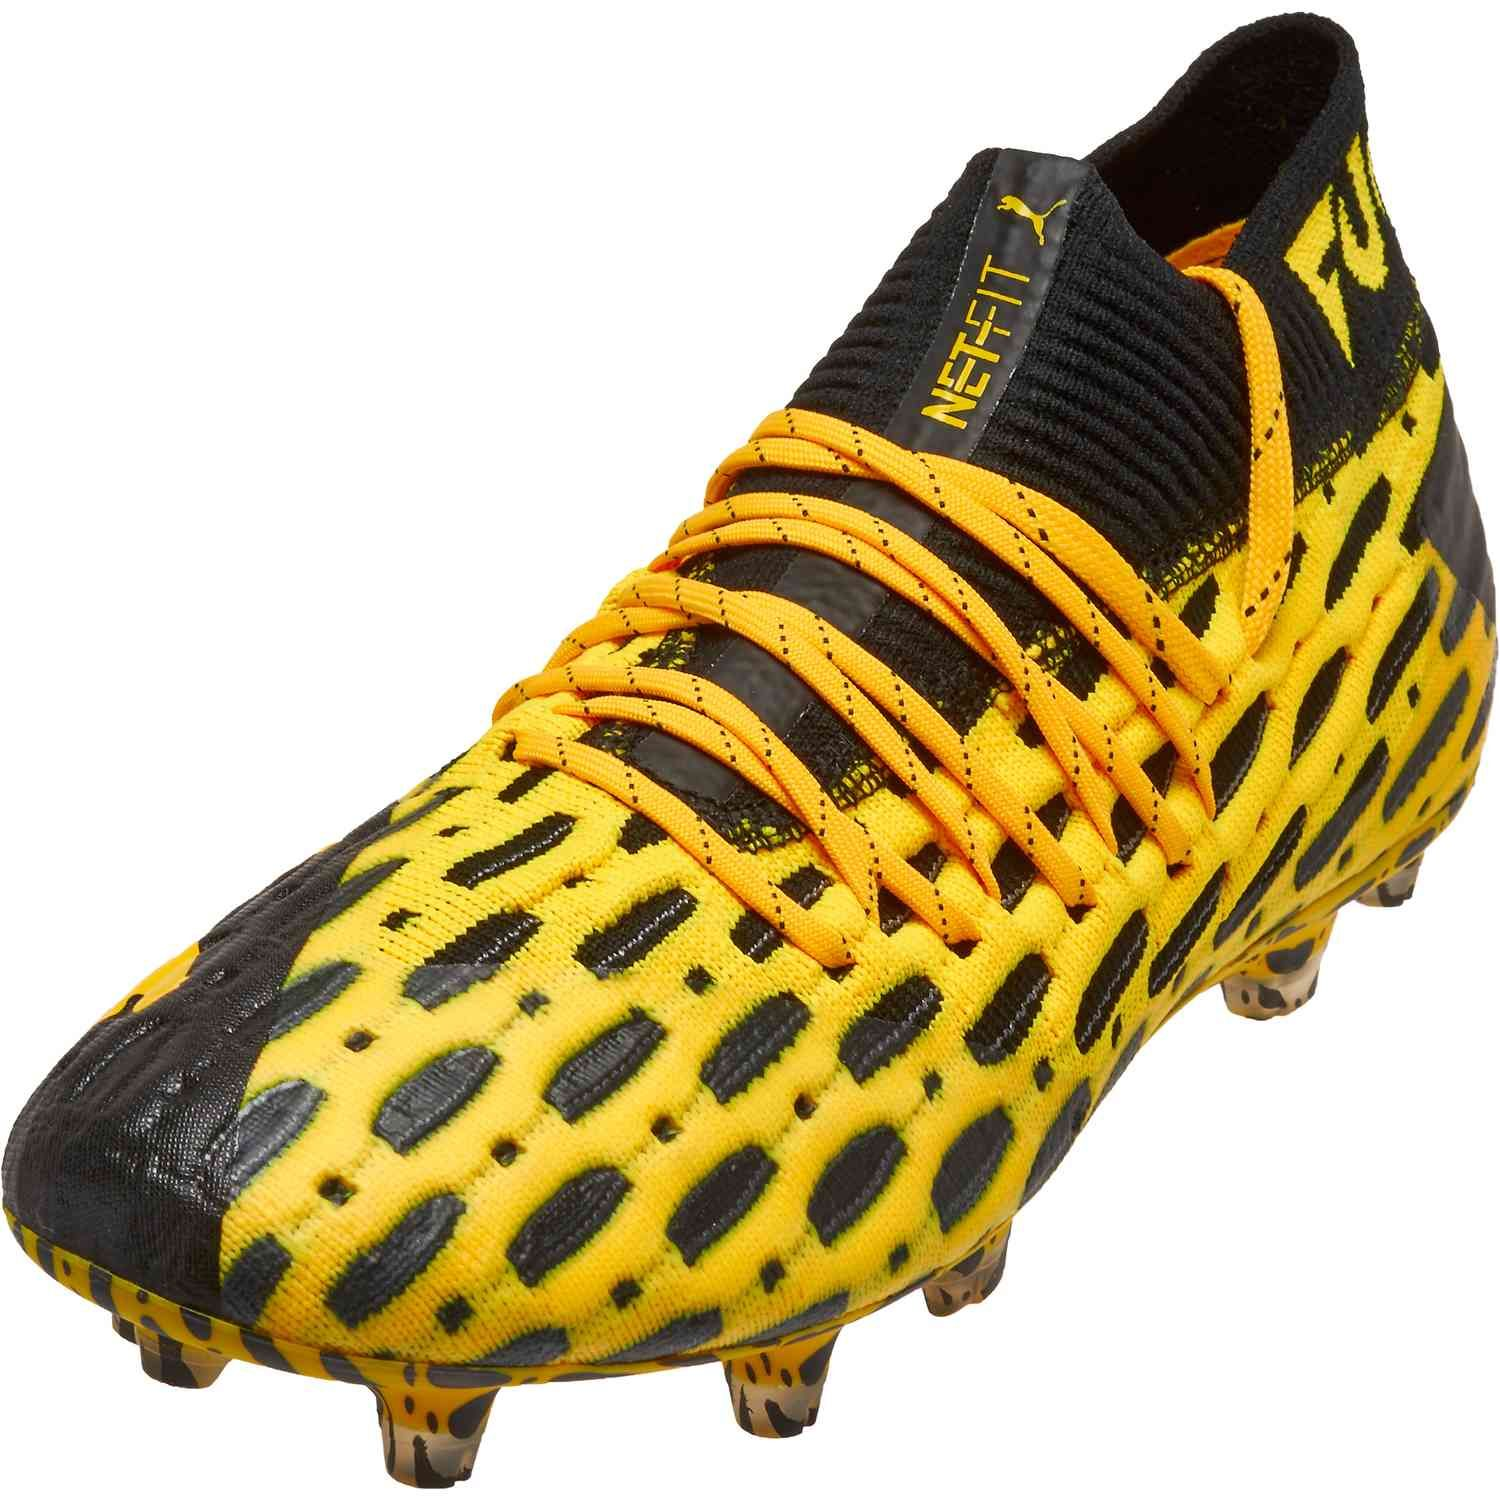 Puma Future 5 1 Fg Spark Pack Soccerpro In 2020 Best Soccer Shoes Puma Football Boots Soccer Boots